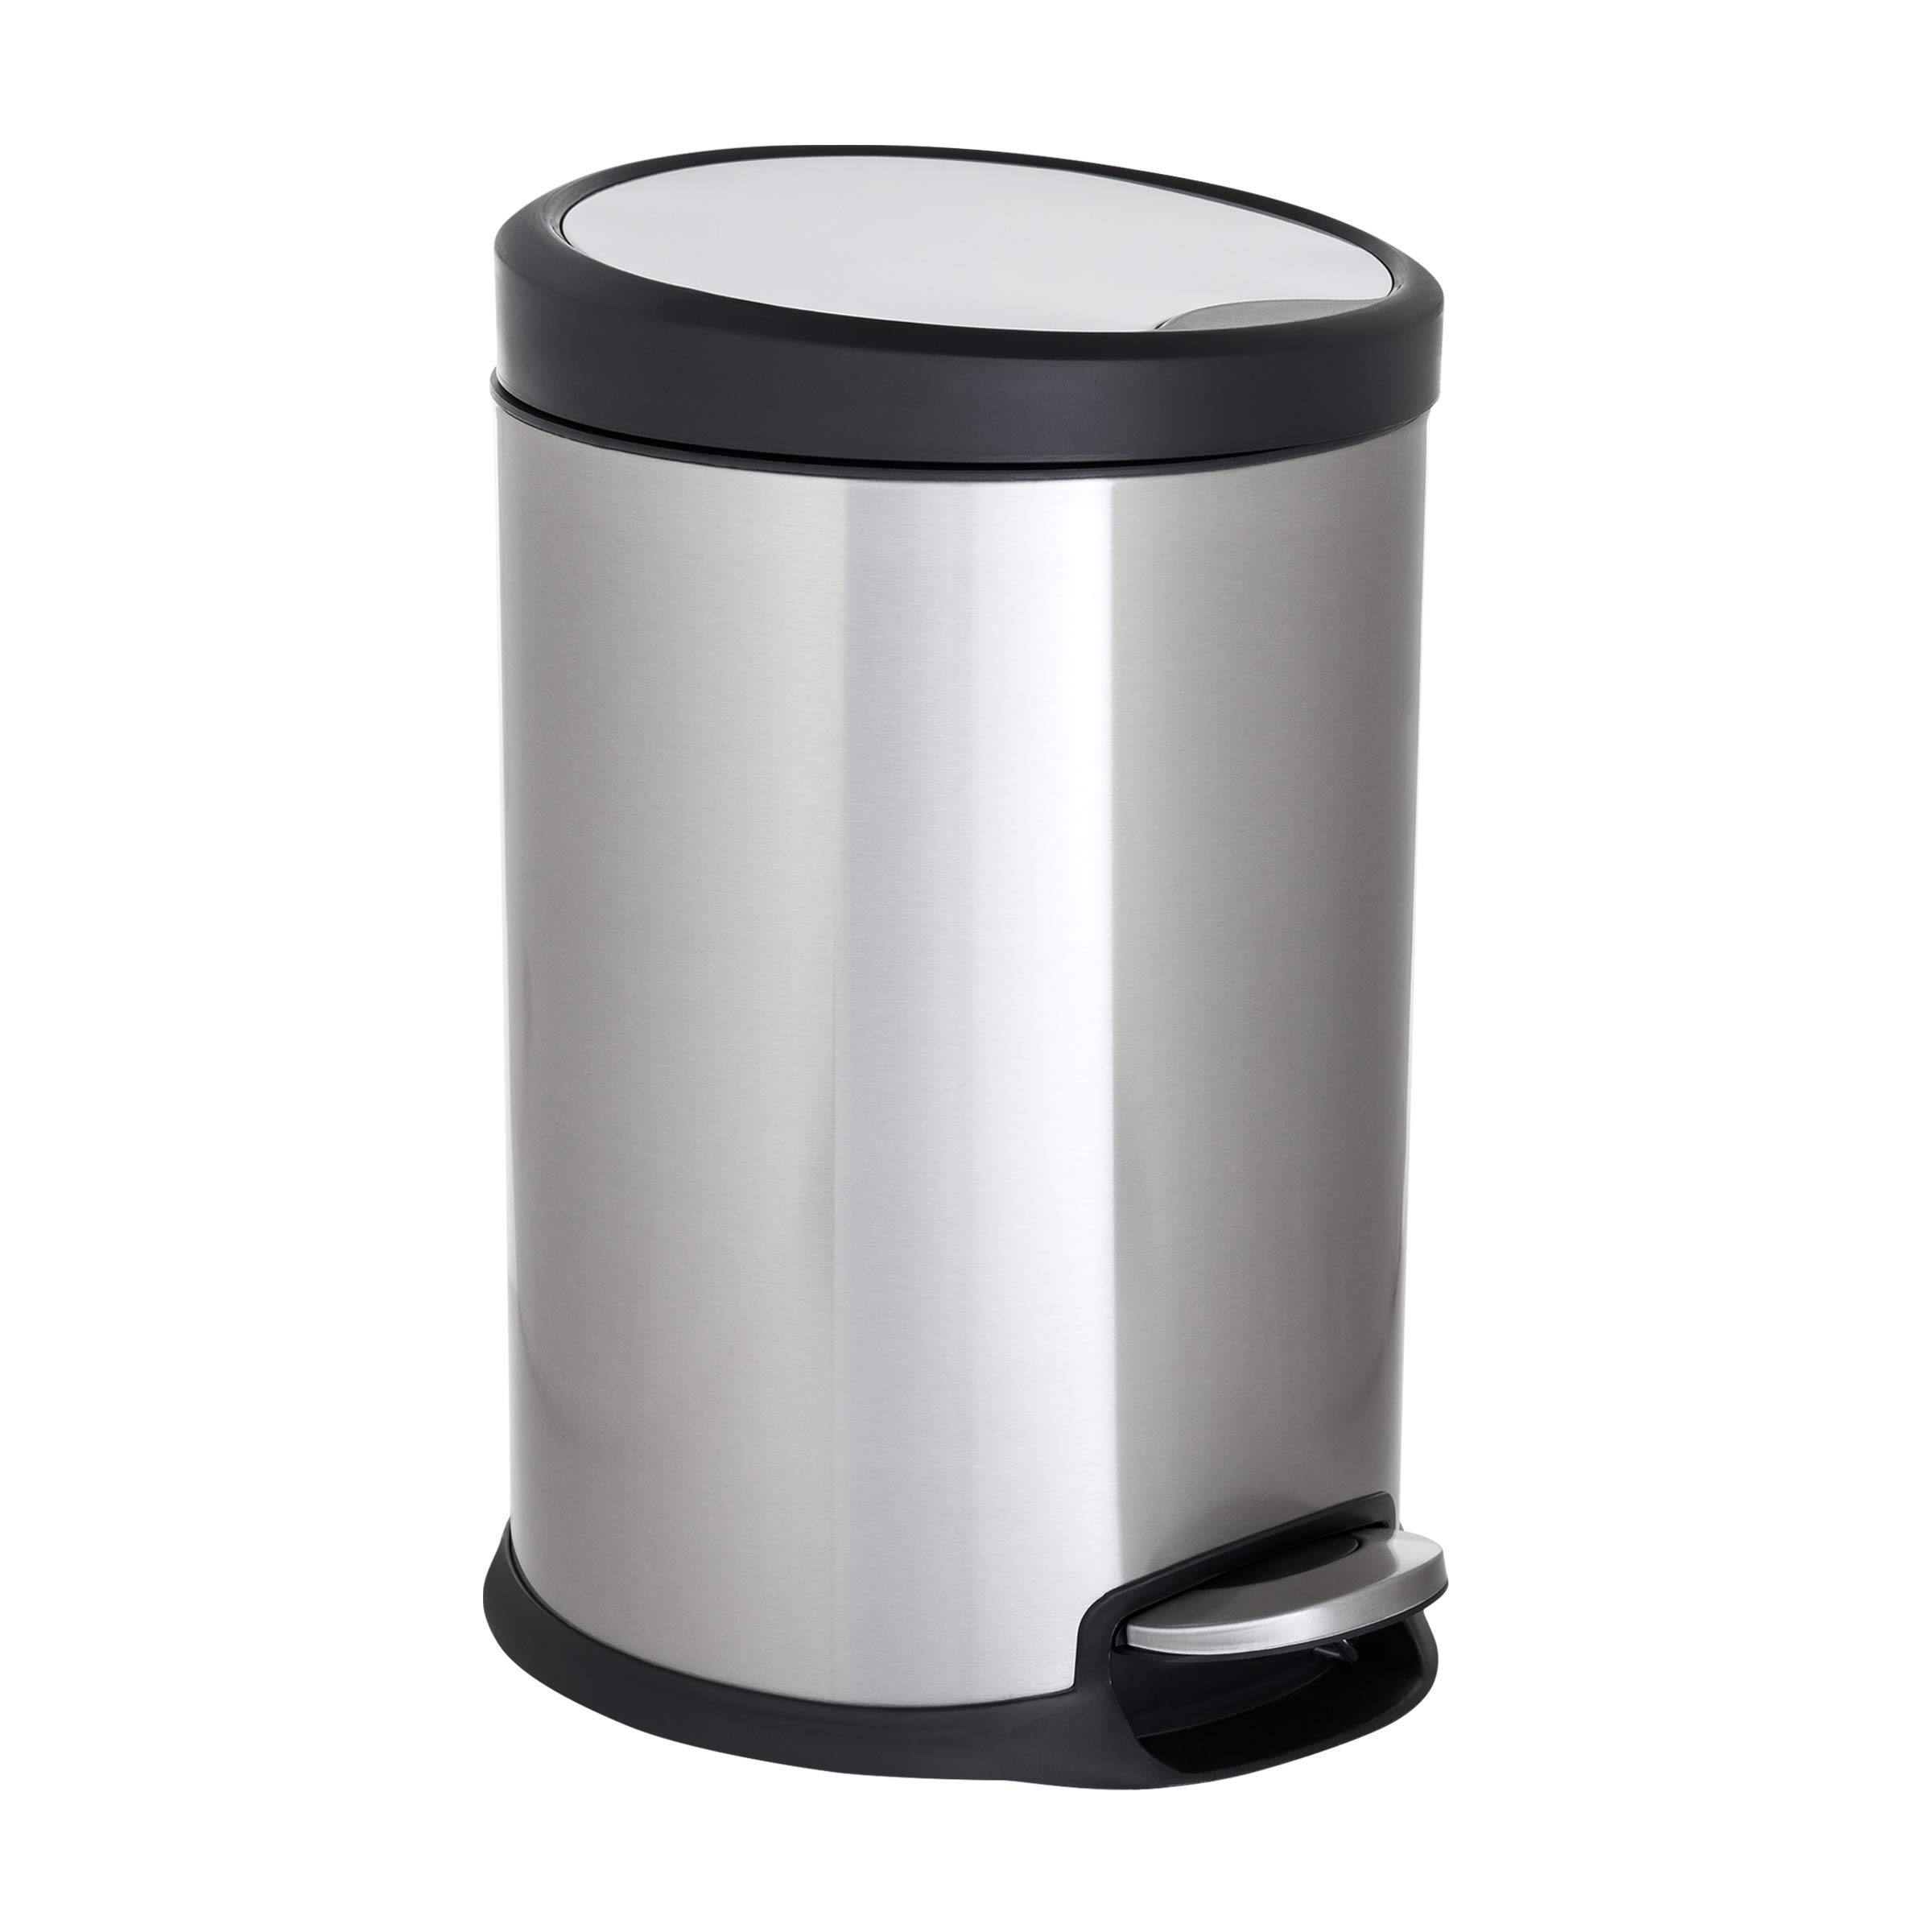 ToiletTree Products Stainless Steel Trash Can, 20 Liter